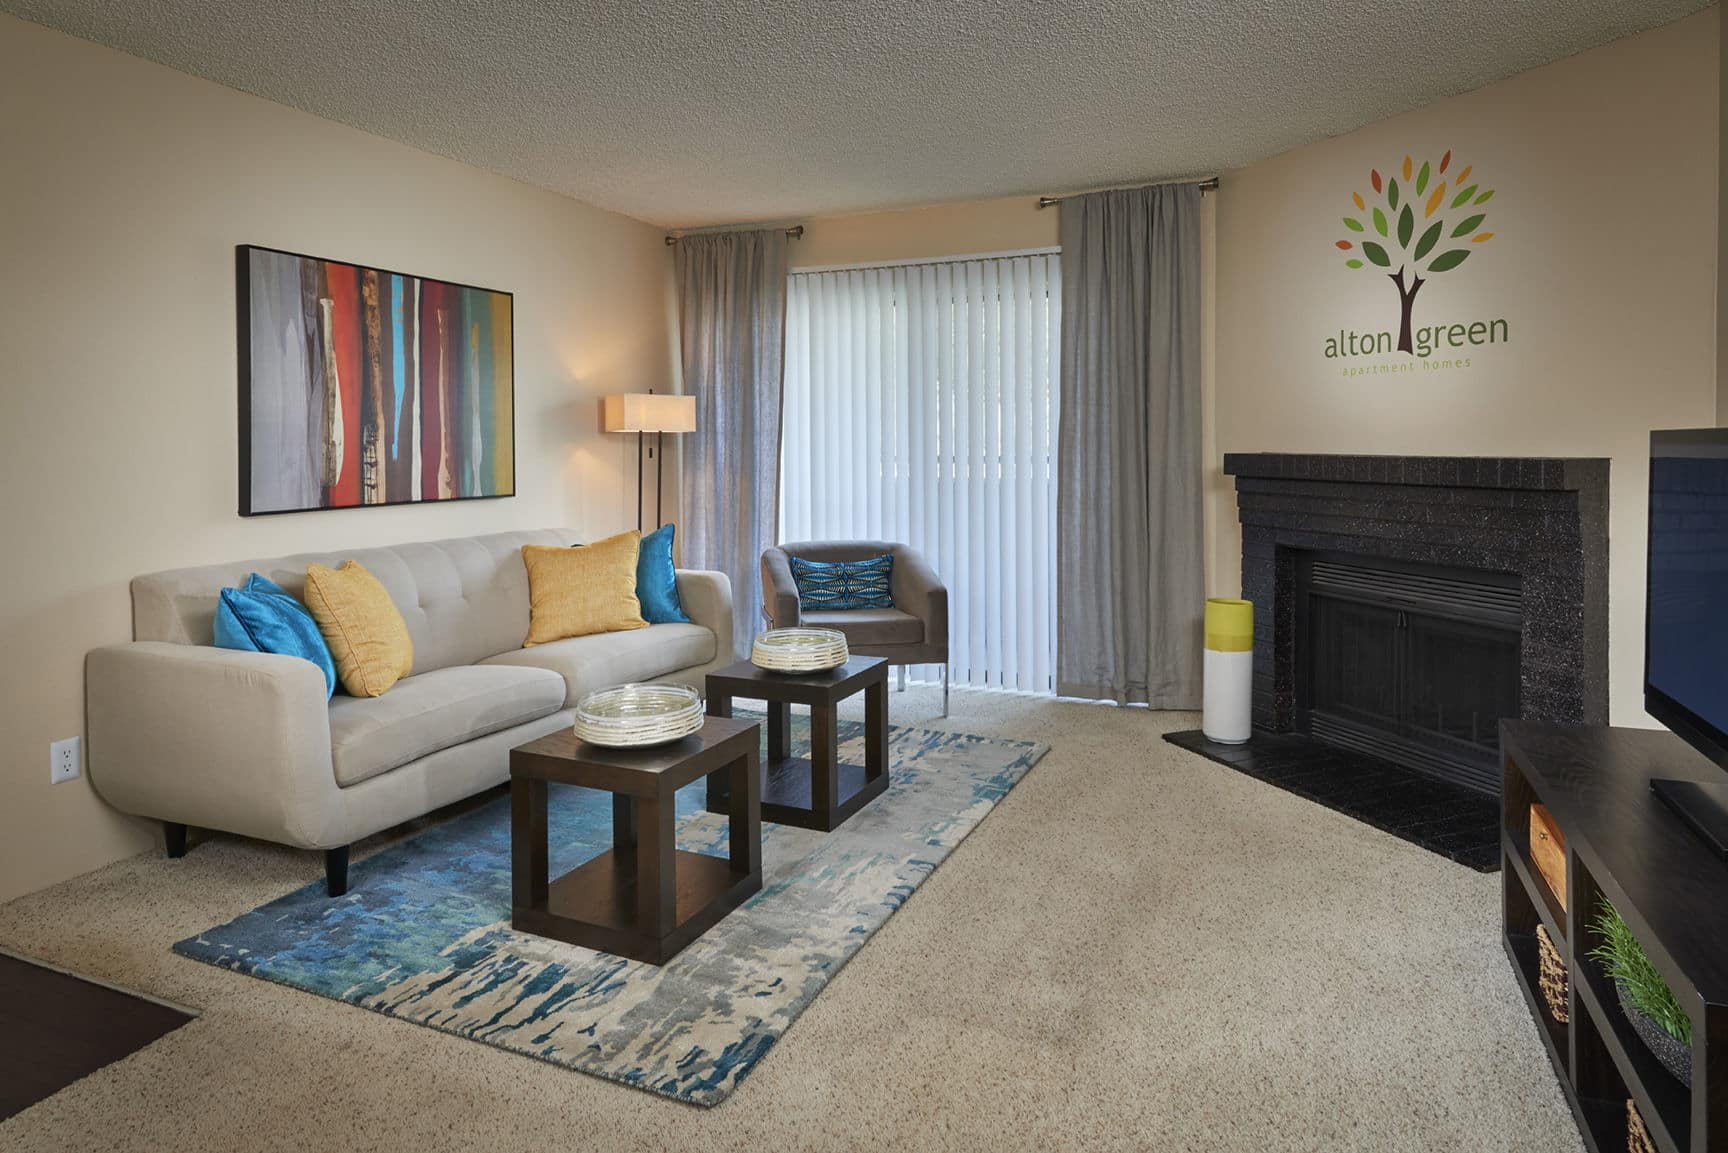 Well Decorated Living Room at Alton Green Apartments in Denver, CO